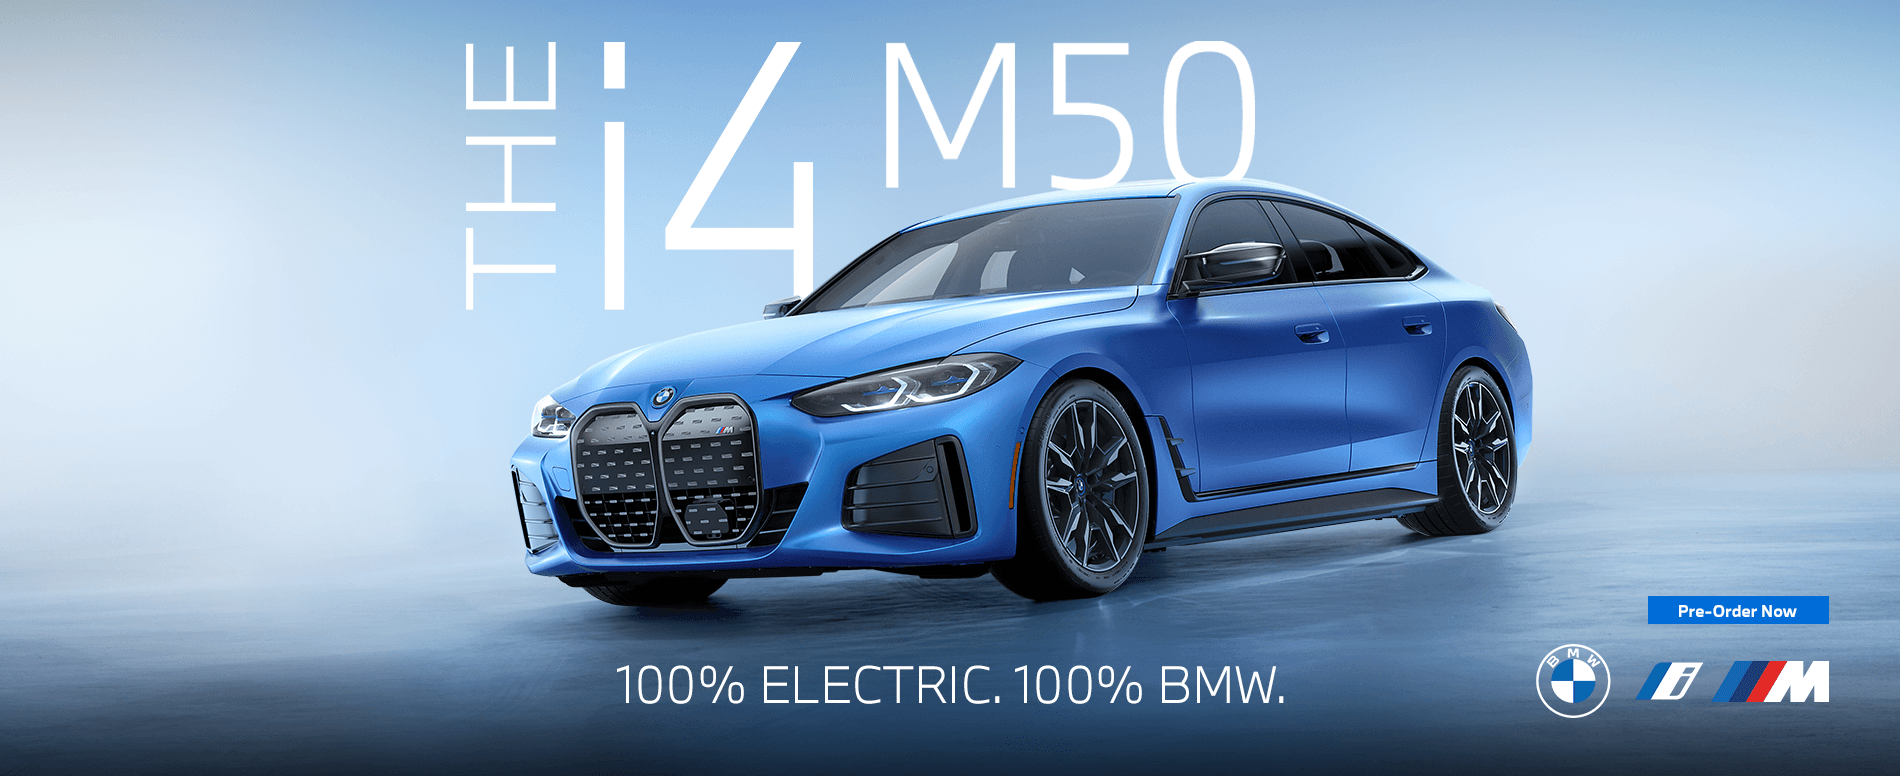 The i4 M50